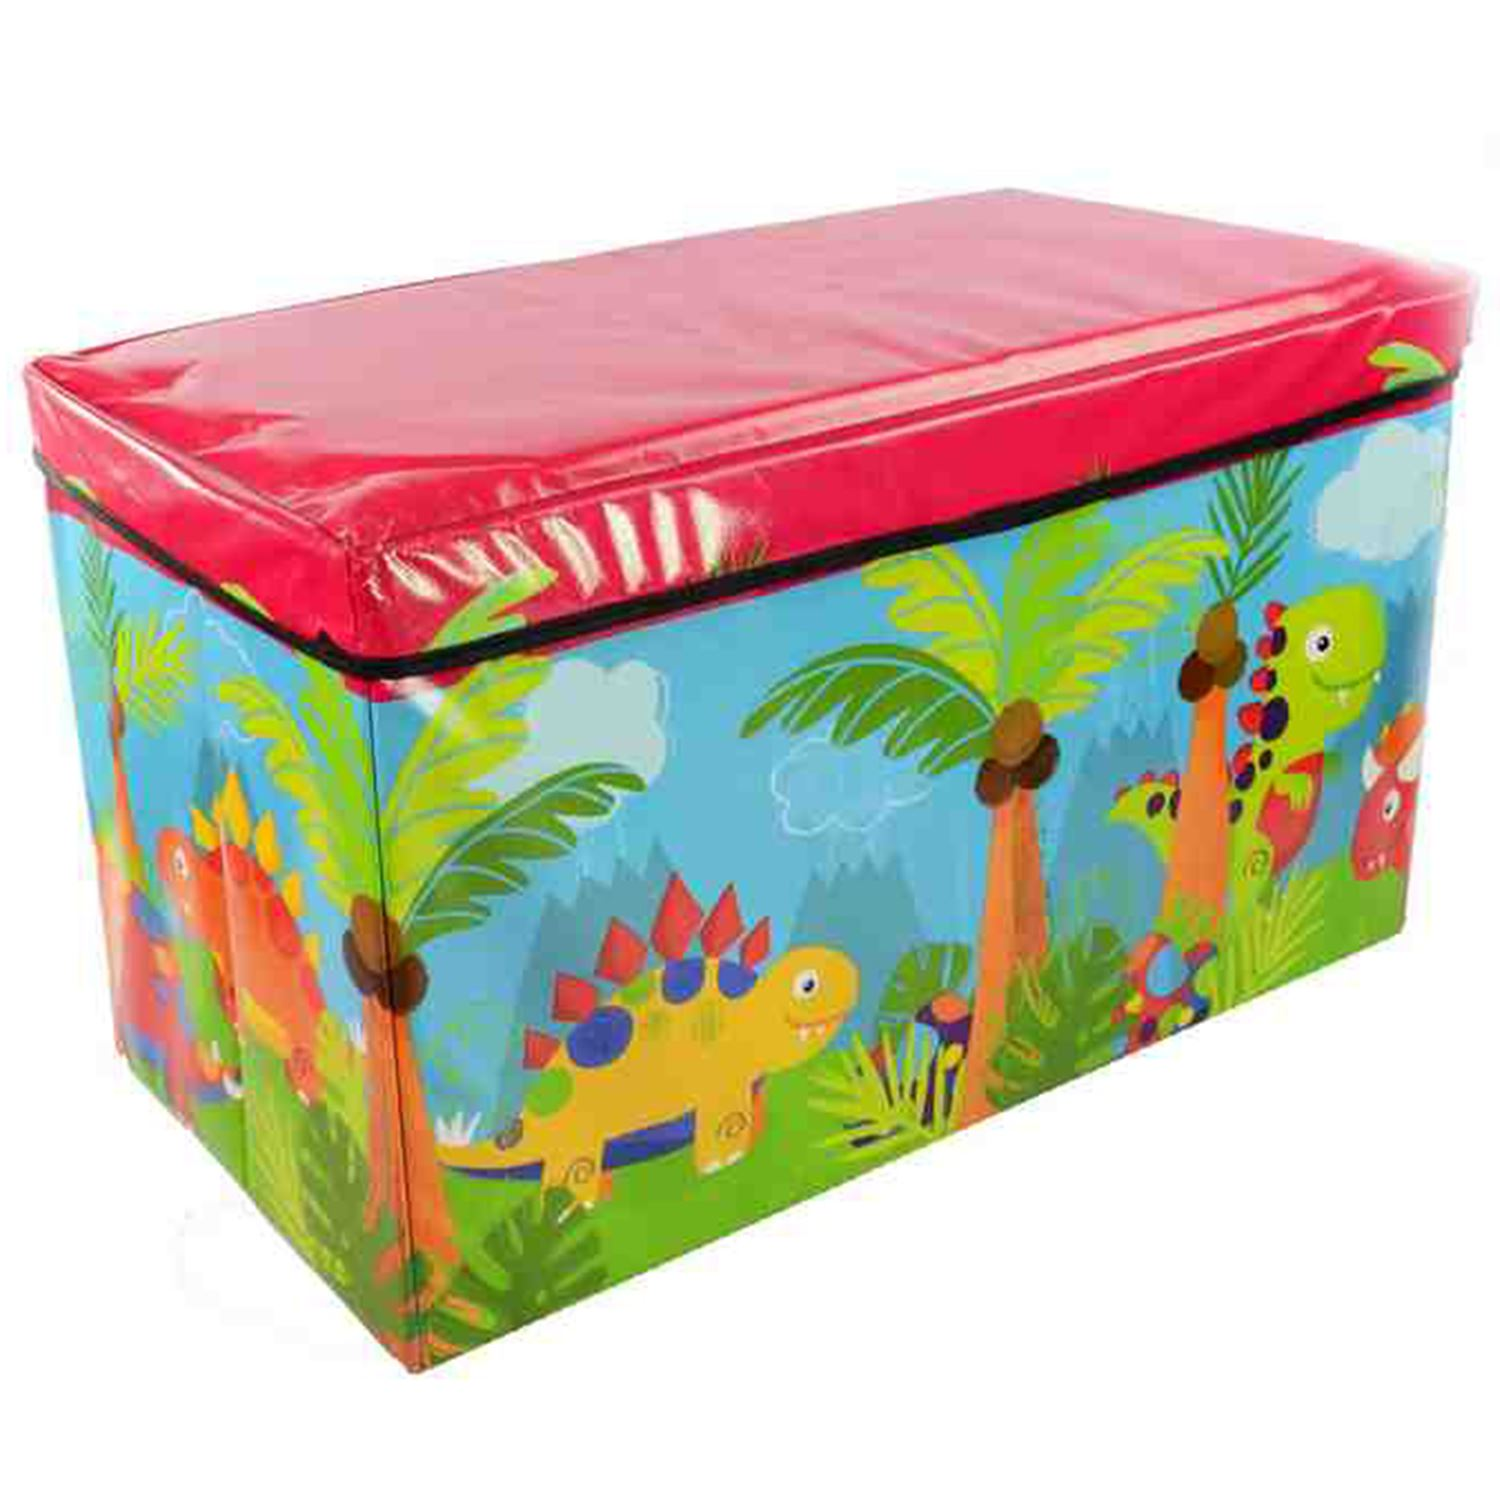 Princess Toys Box Storage Kids Girls Chest Bedroom Clothes: Kids Childrens Large Storage Toy Box Boys Girls Books